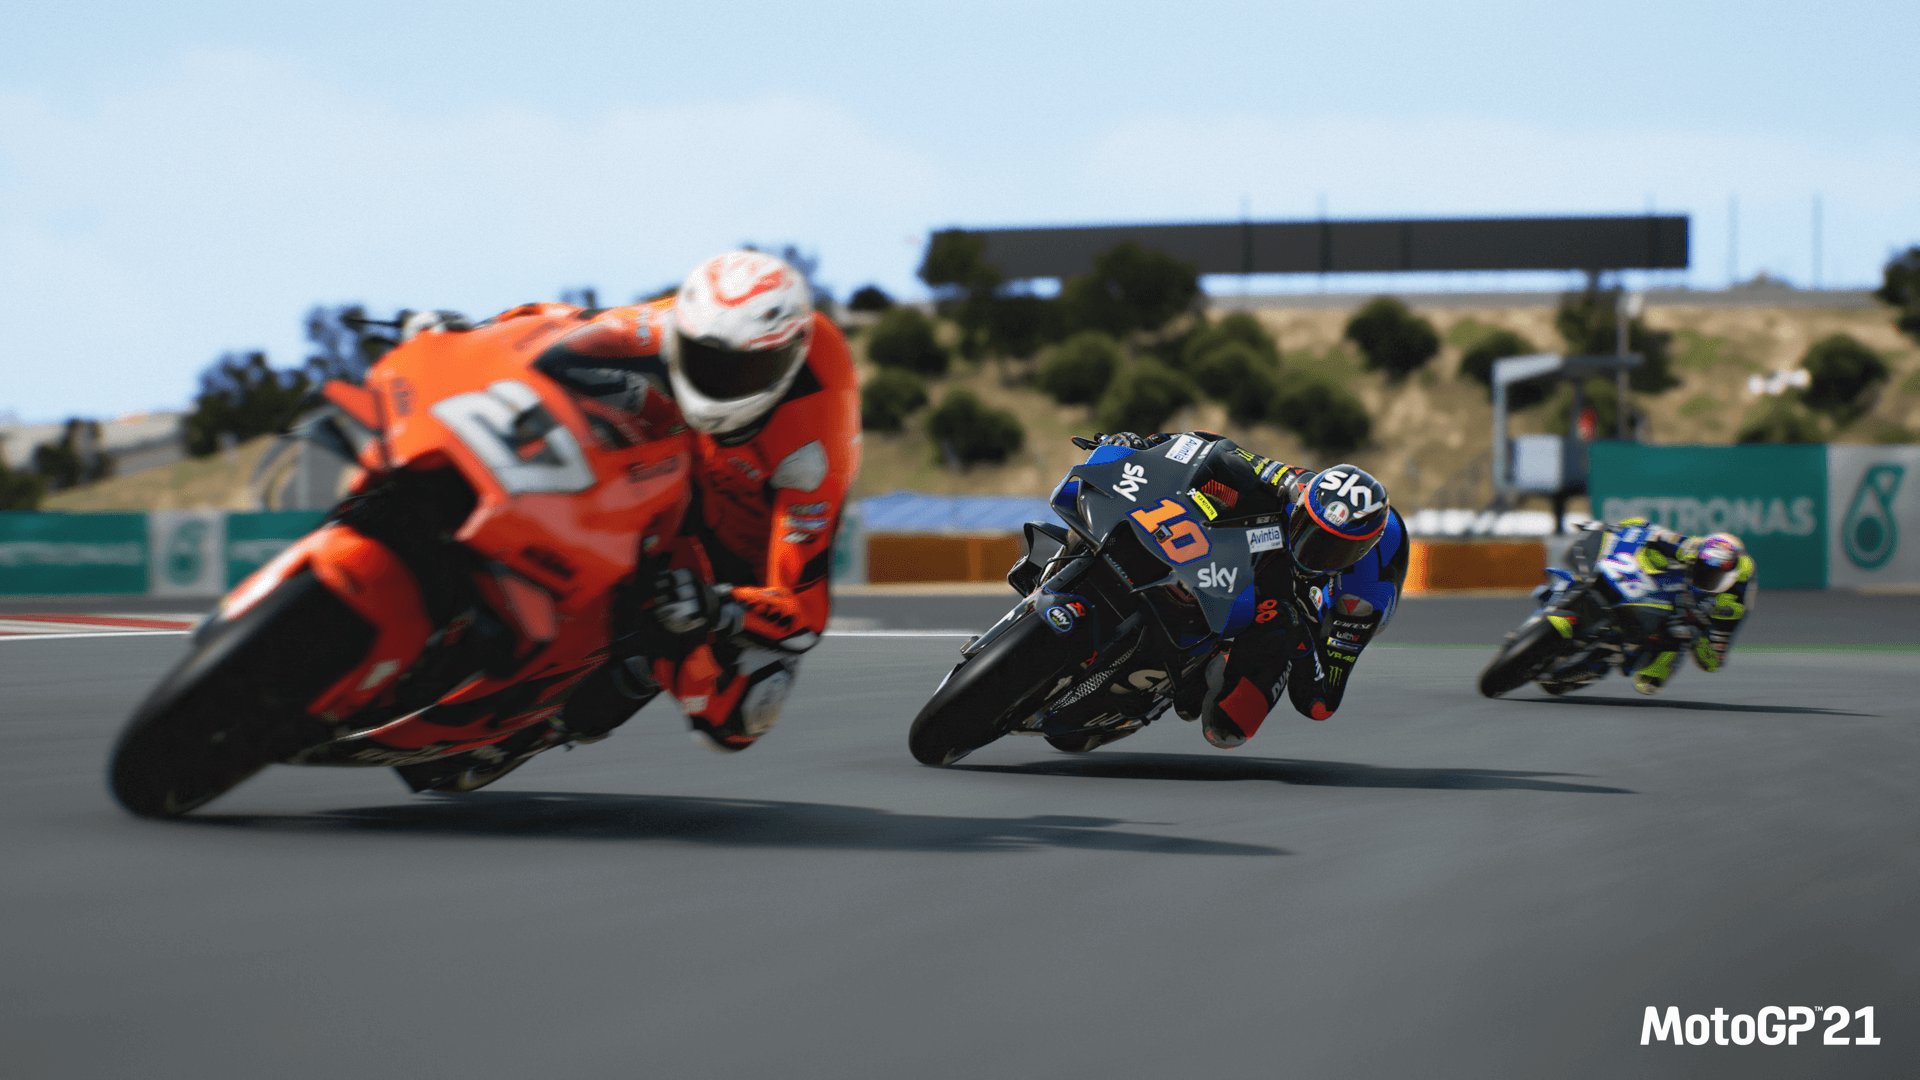 Moto GP 21 Now Available on Major Platforms